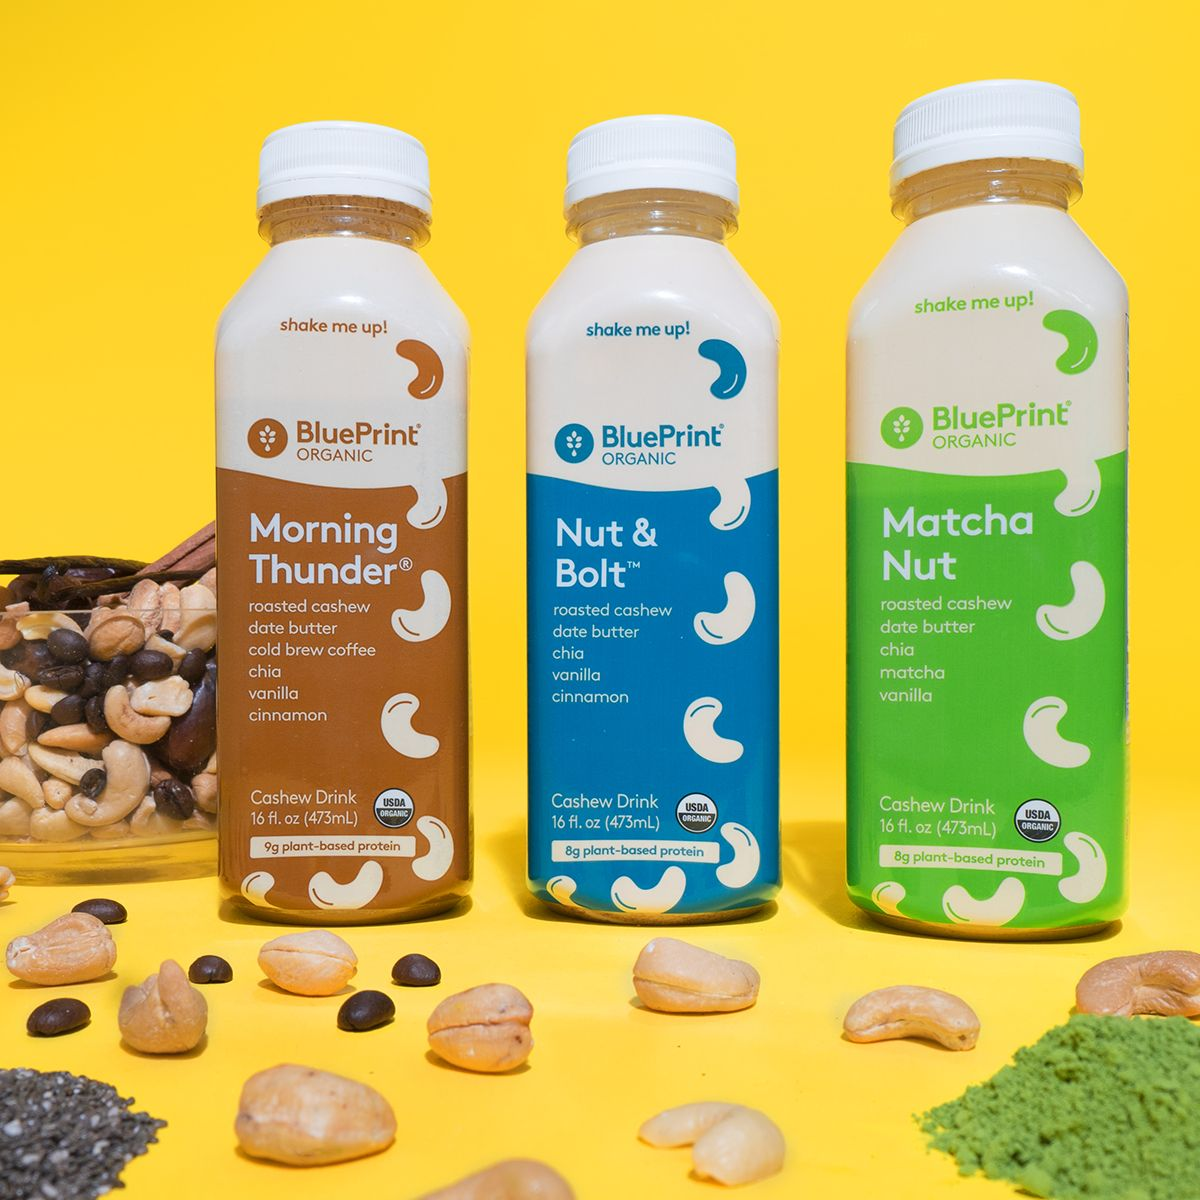 Big news our creamy delicious cashew milks are back youll back by popular demand blueprints naturally free cashew milks is packed with plant based protein to fuel your lifestyle malvernweather Image collections